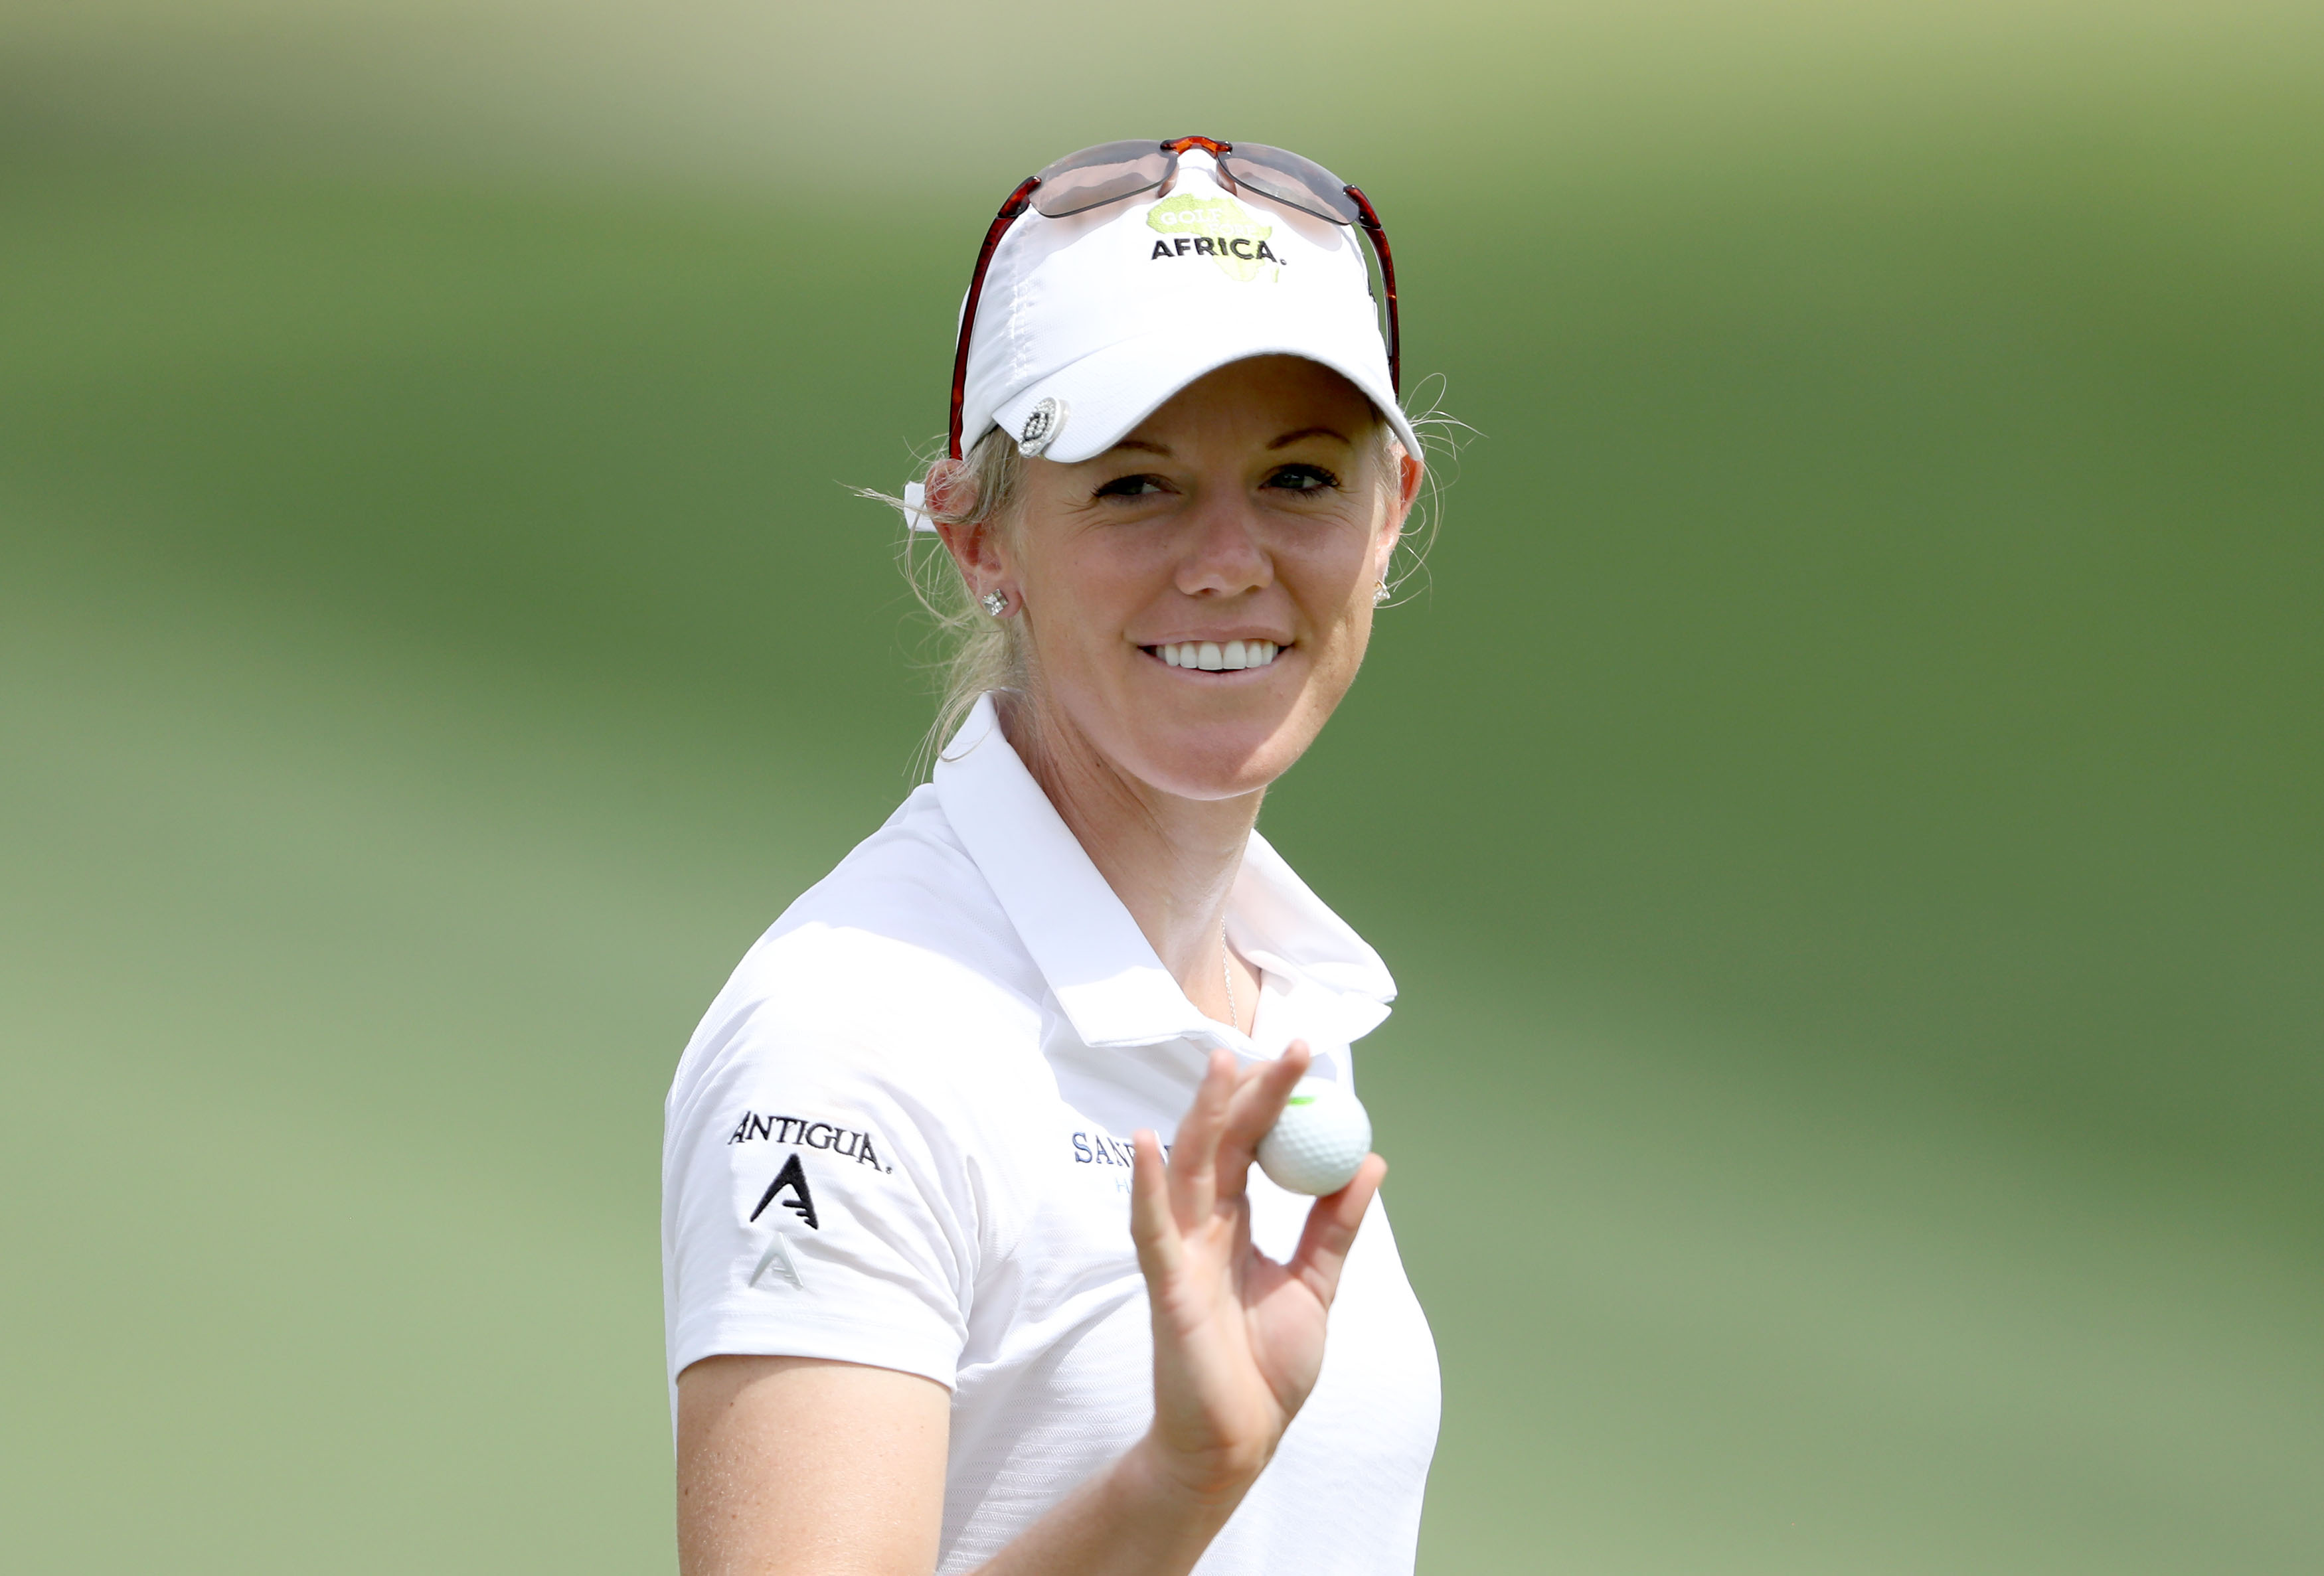 RANCHO MIRAGE, CA - MARCH 31: Amy Olson of the United States acknowledges the crowd after making a birdie putt on the par 4, first hole during the third round of the 2018 ANA Inspiration on the Dinah Shore Tournament Course at Mission Hills Country Club on March 31, 2018 in Rancho Mirage, California. (Photo by David Cannon/Getty Images)